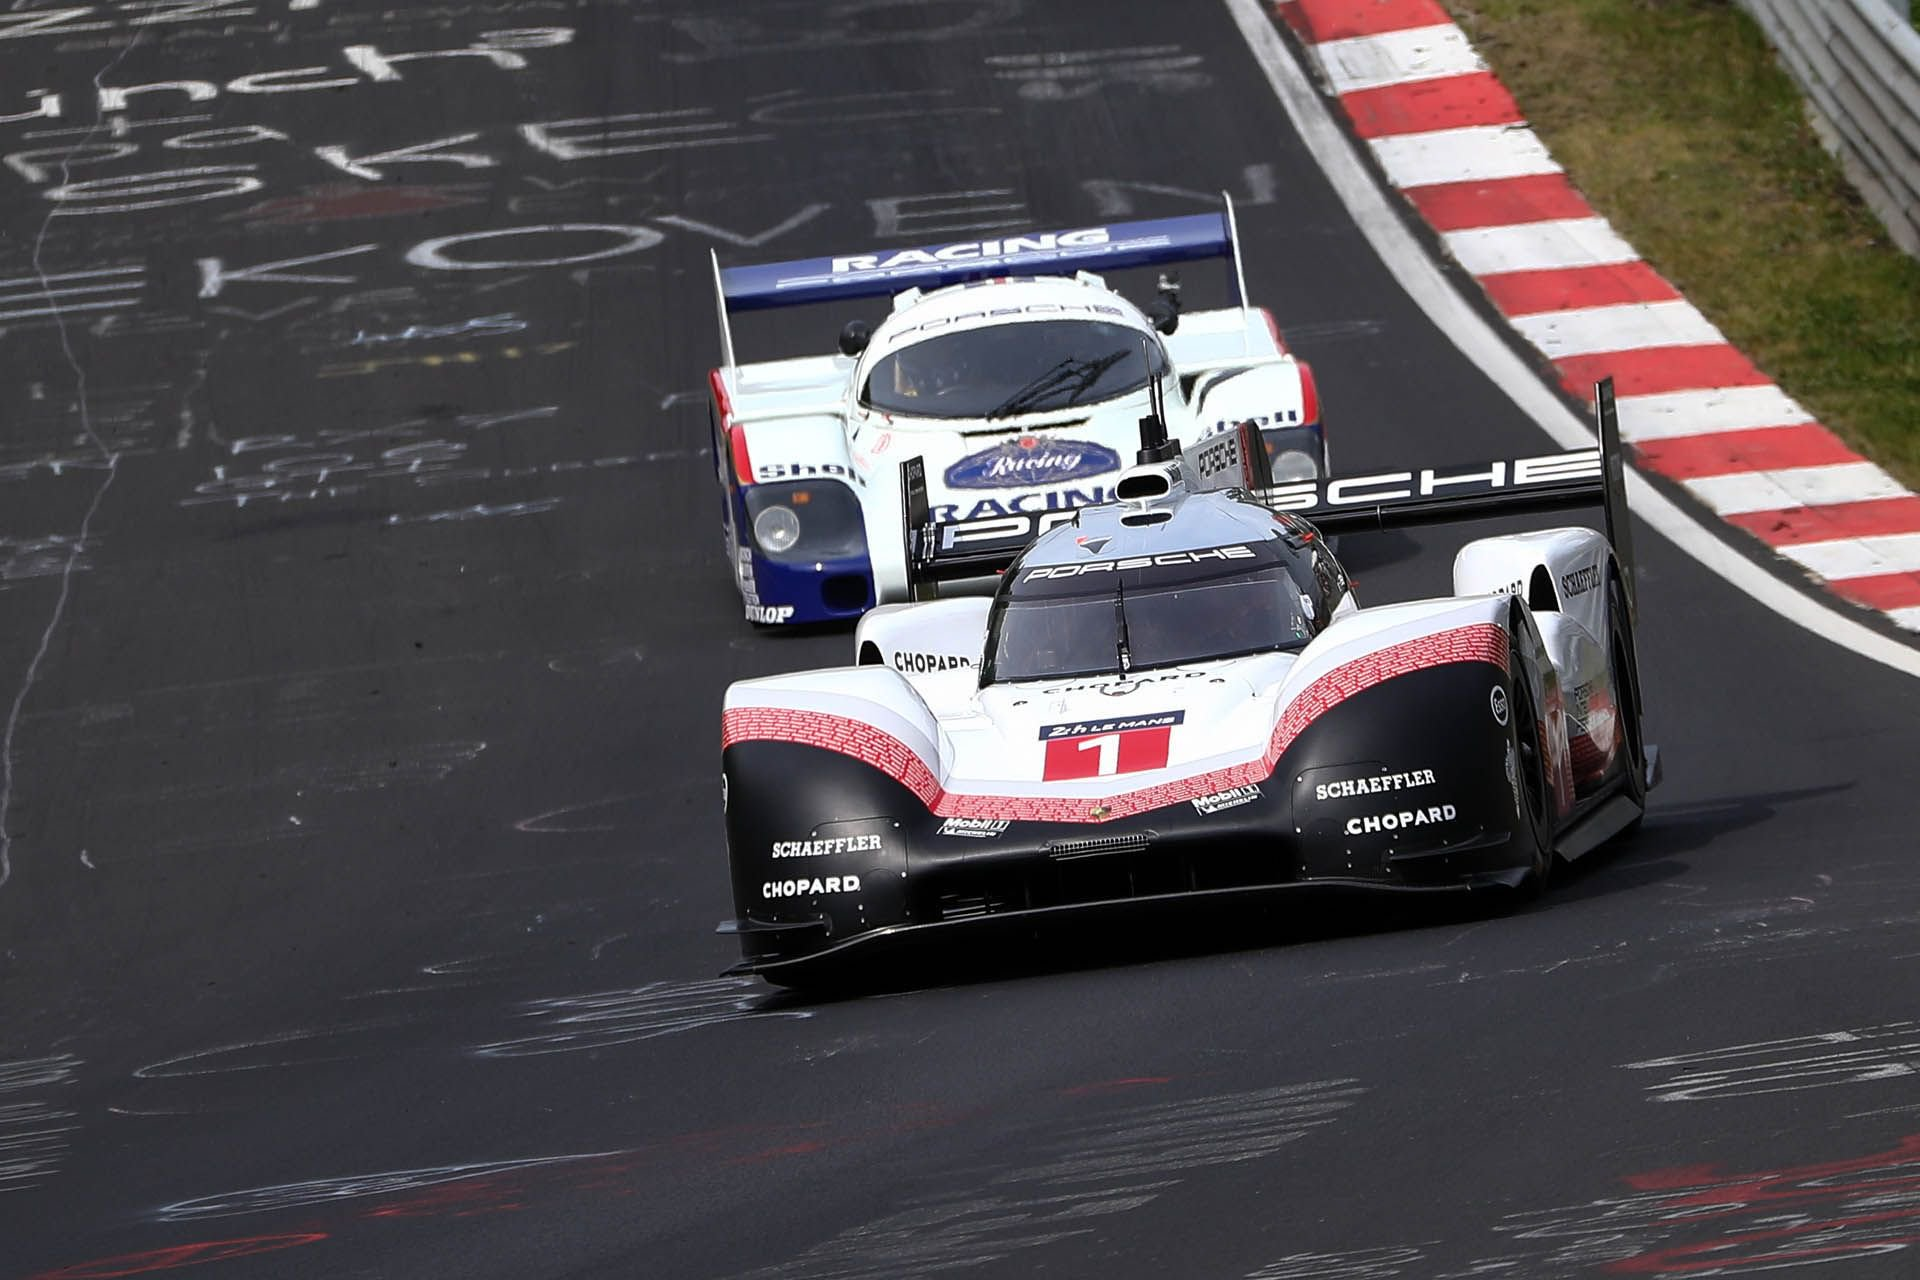 Porsche 919 Hybrid Evo and 956 at Nurburgring (13)